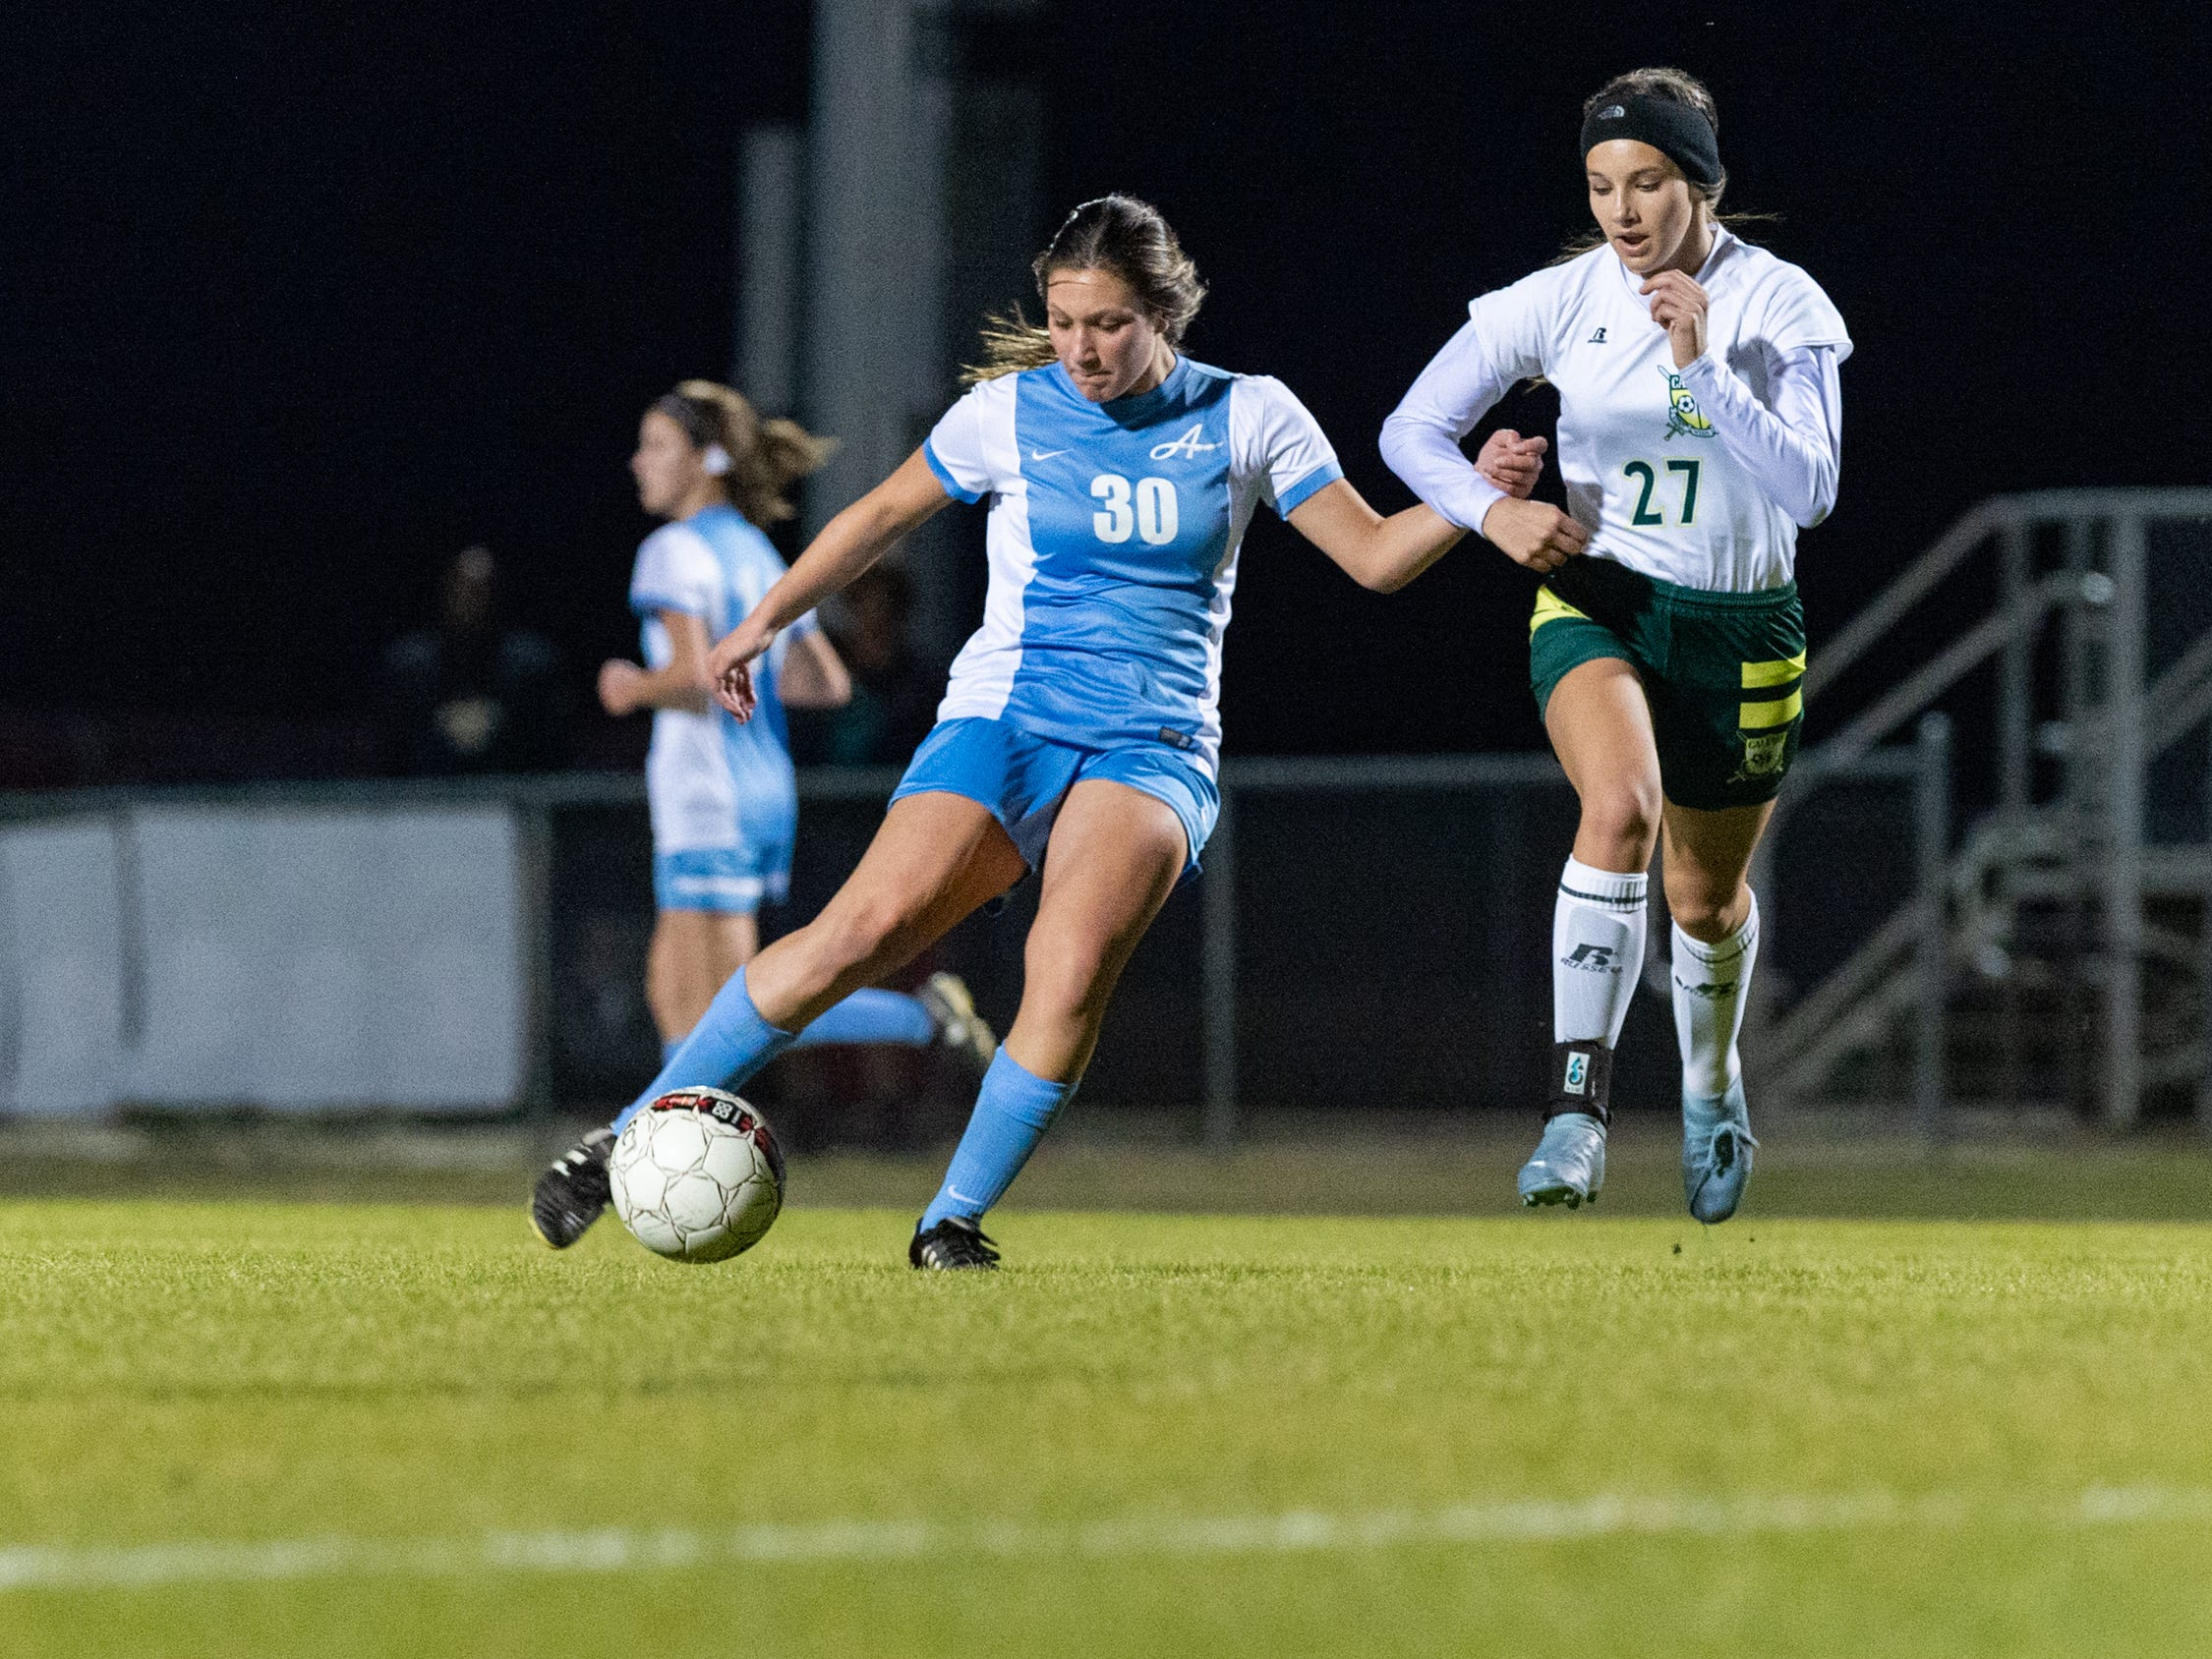 Camille Blanchard takes a shot as the Ascension Blue Gators blank the Calvary Cavaliers 6-0. Thursday, Jan. 31, 2019.